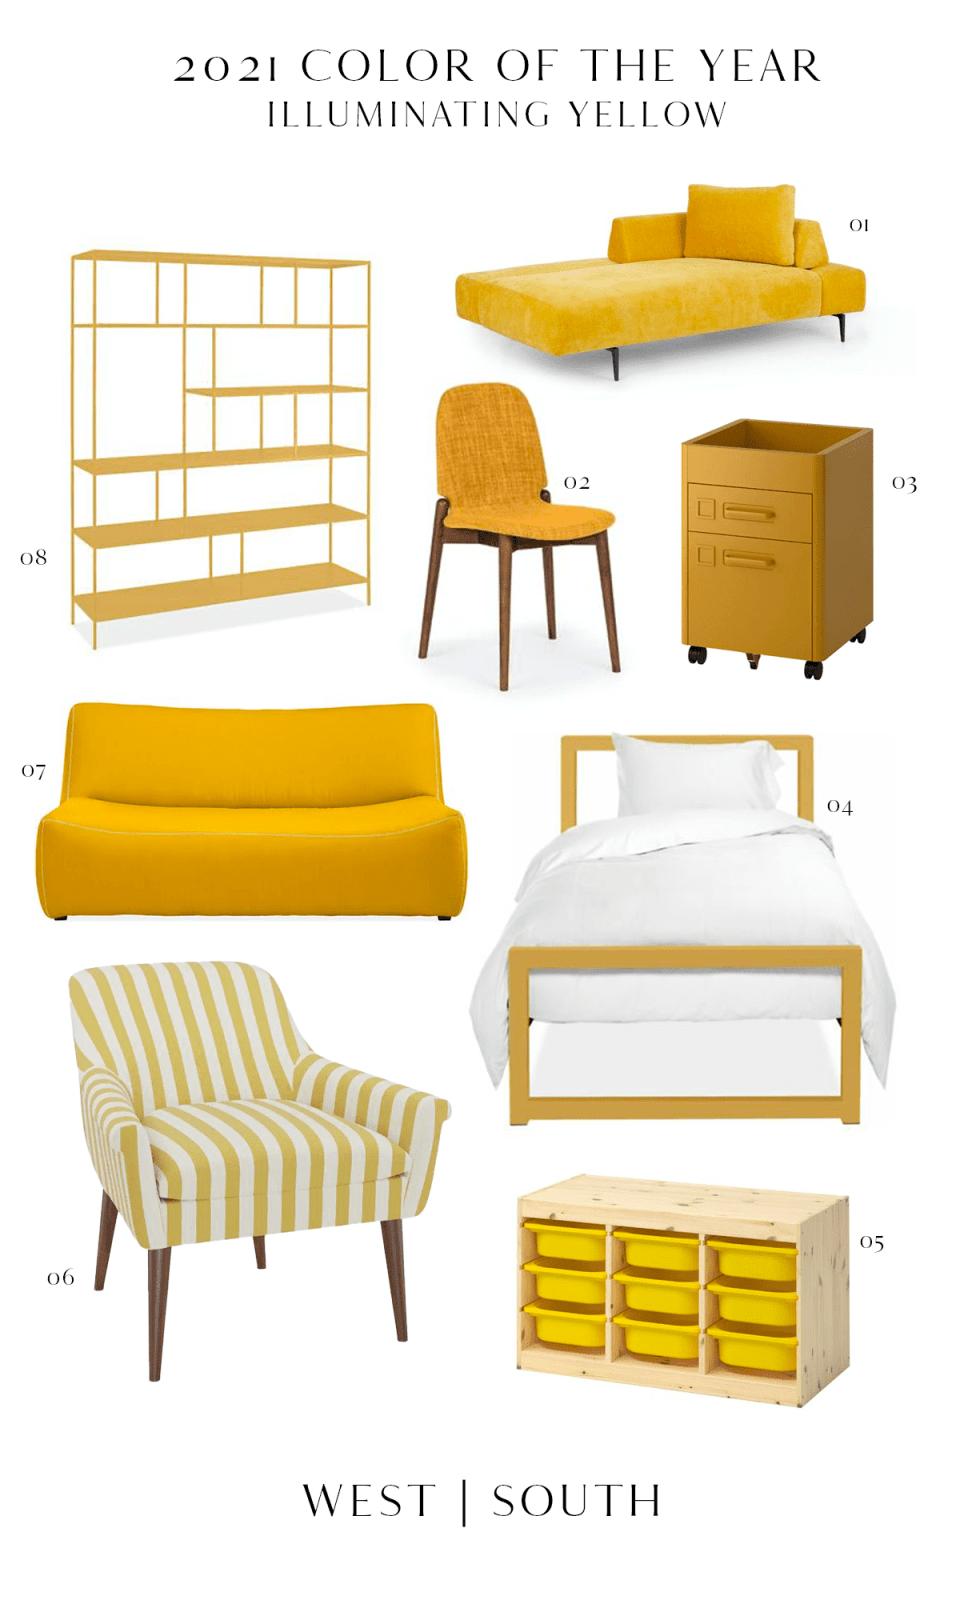 roundup image showing yellow seating shelving beds and storage